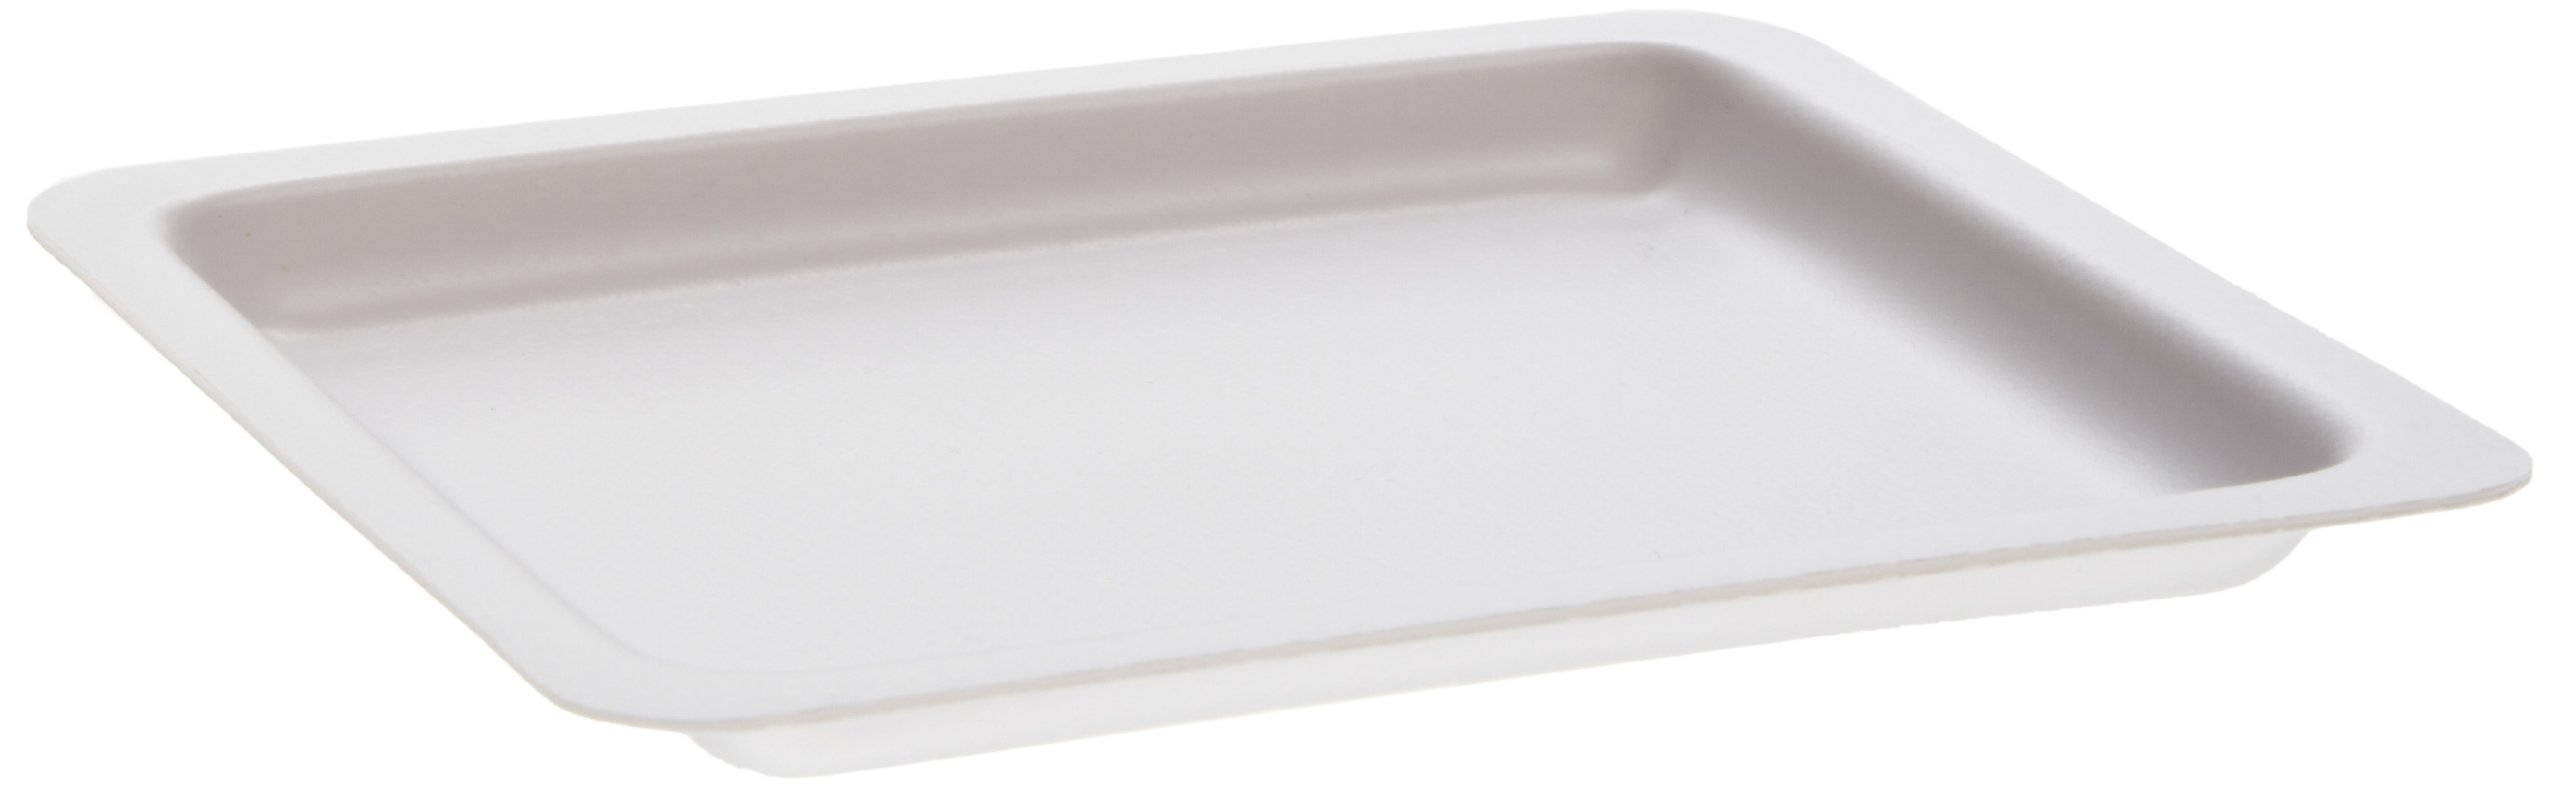 Heathrow Scientific HS1422 Square Weighing Boat, Polystyrene, Medium, 90 mm L x 90 mm W x 7 mm D, White (Pack of 500) by Heathrow Scientific